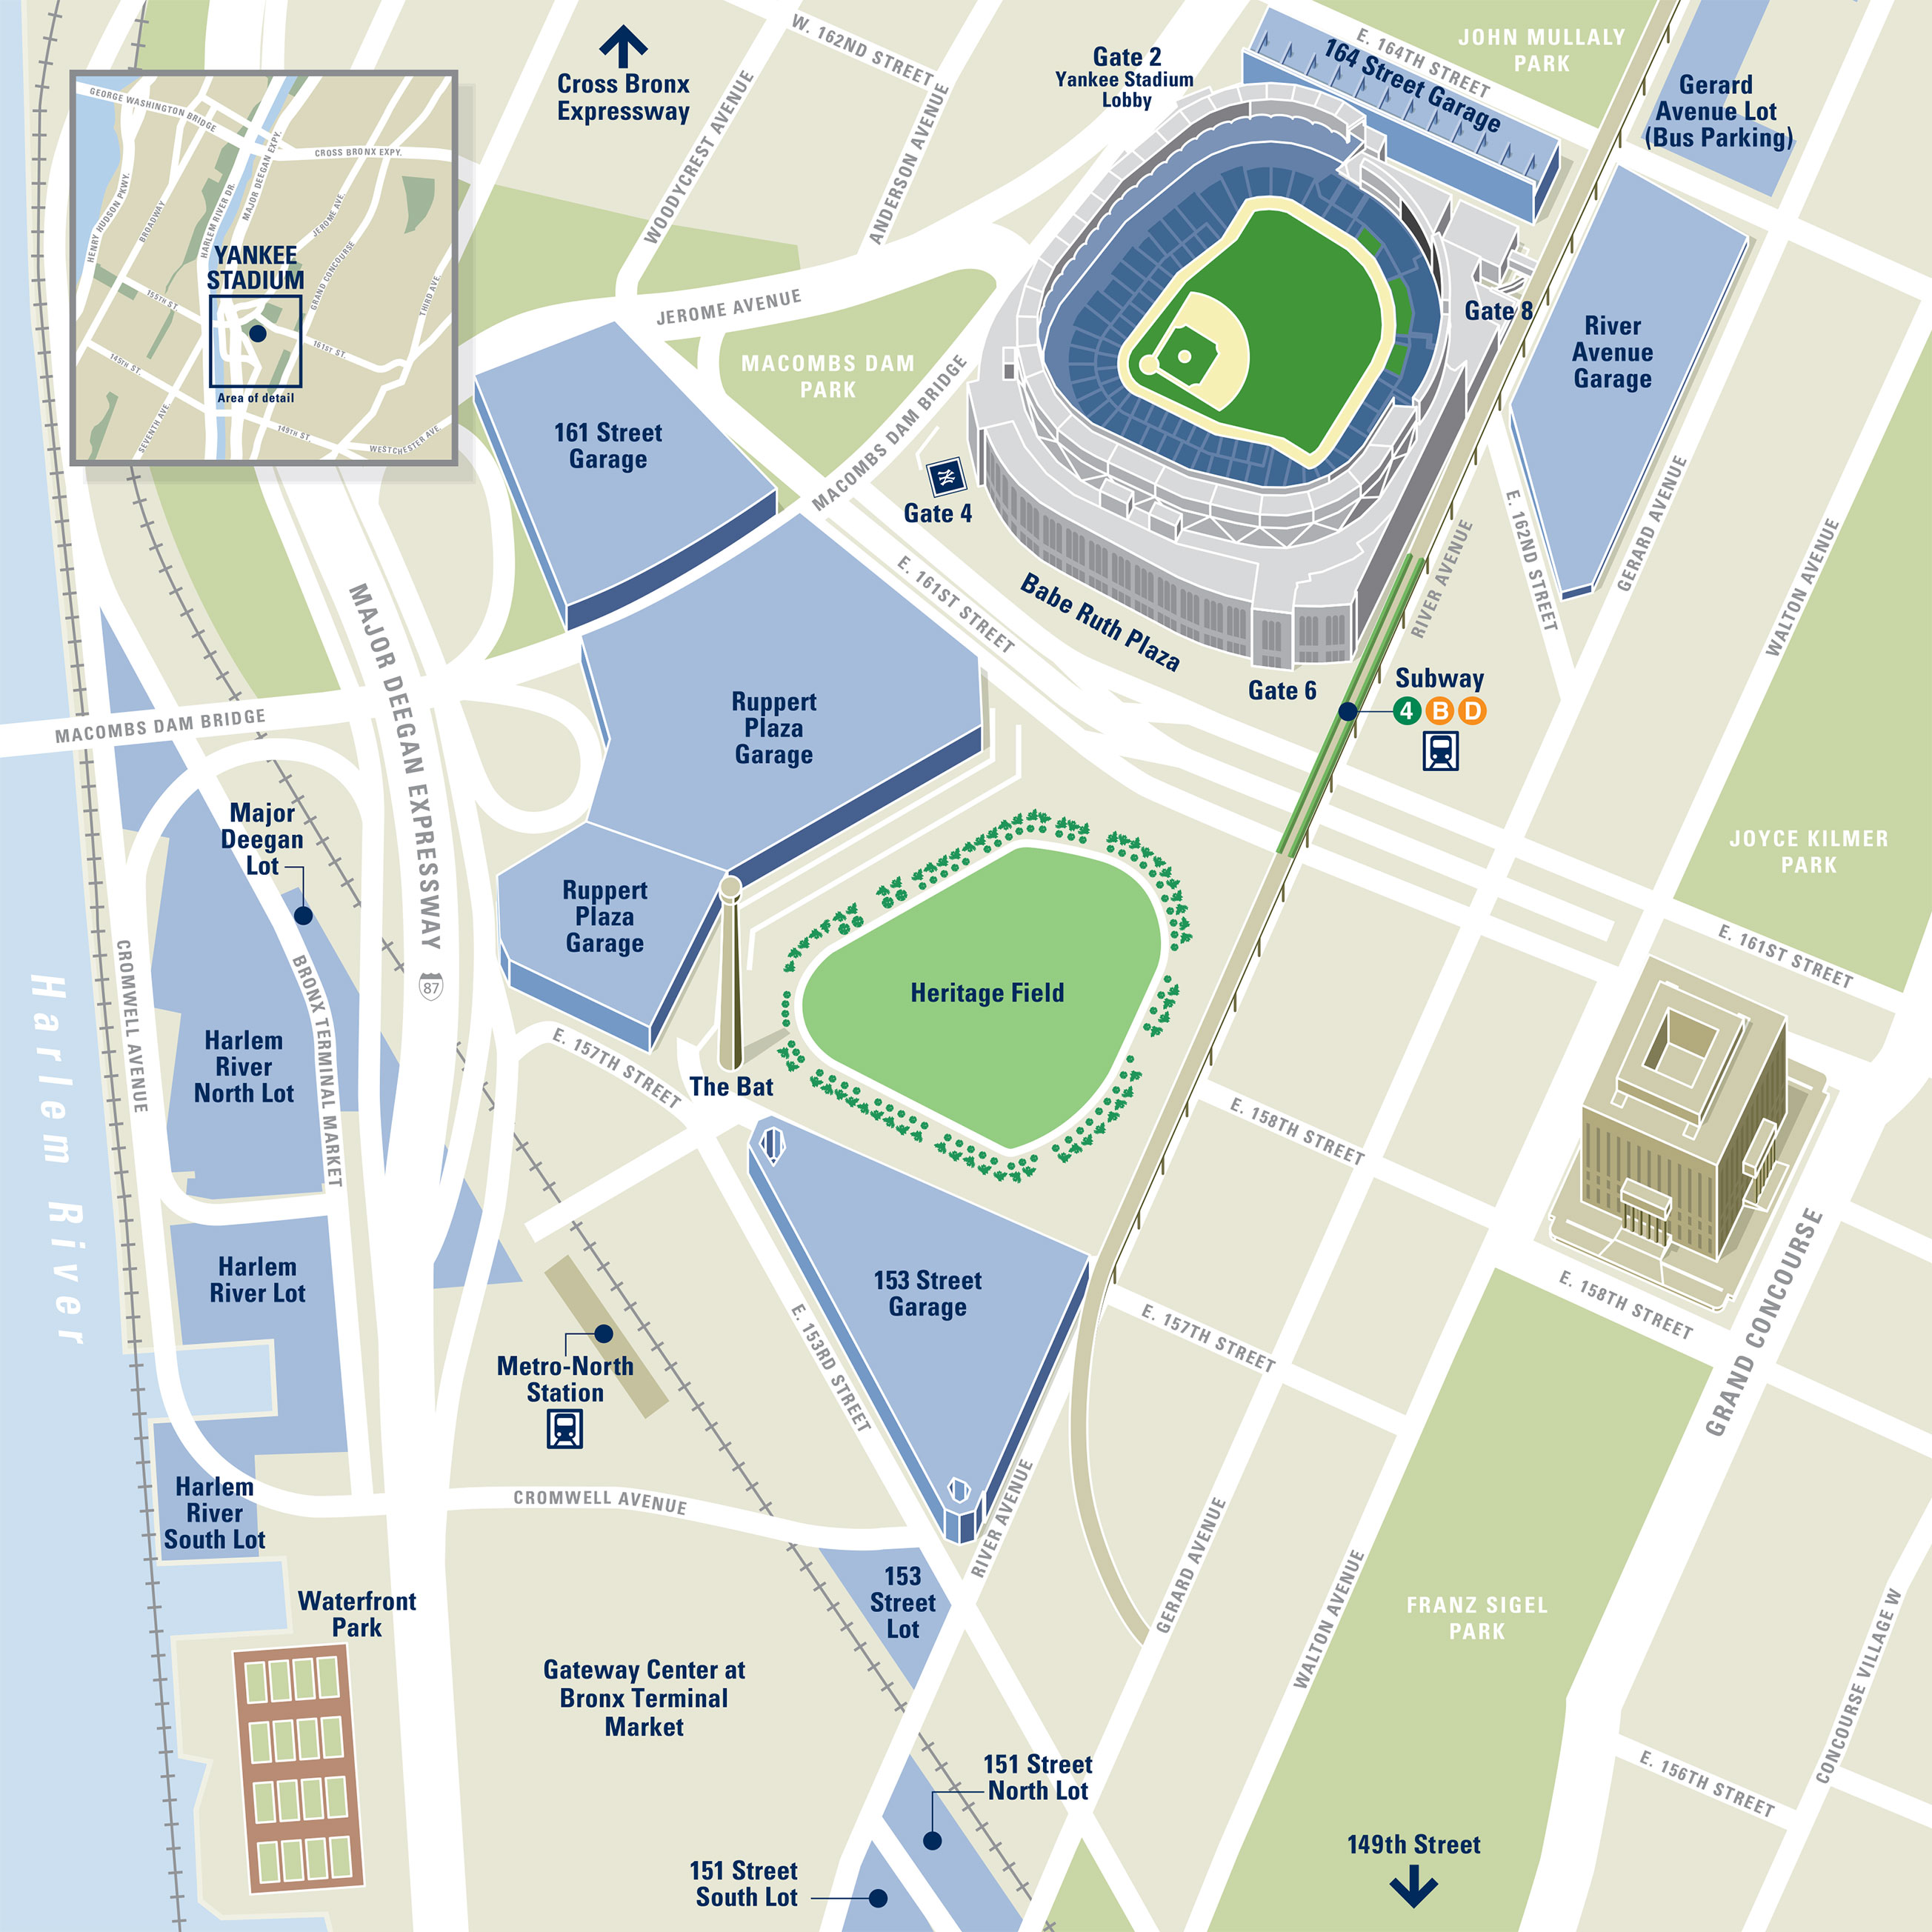 Yankee Stadium Directions and Parking Info | New York Yankees on at&t service map, united illuminating service map, alliant energy service map, consumers energy service map, cox communications service map, cl&p service map, southern california edison service map, nstar service map, centerpoint energy service map, connecticut water service map,